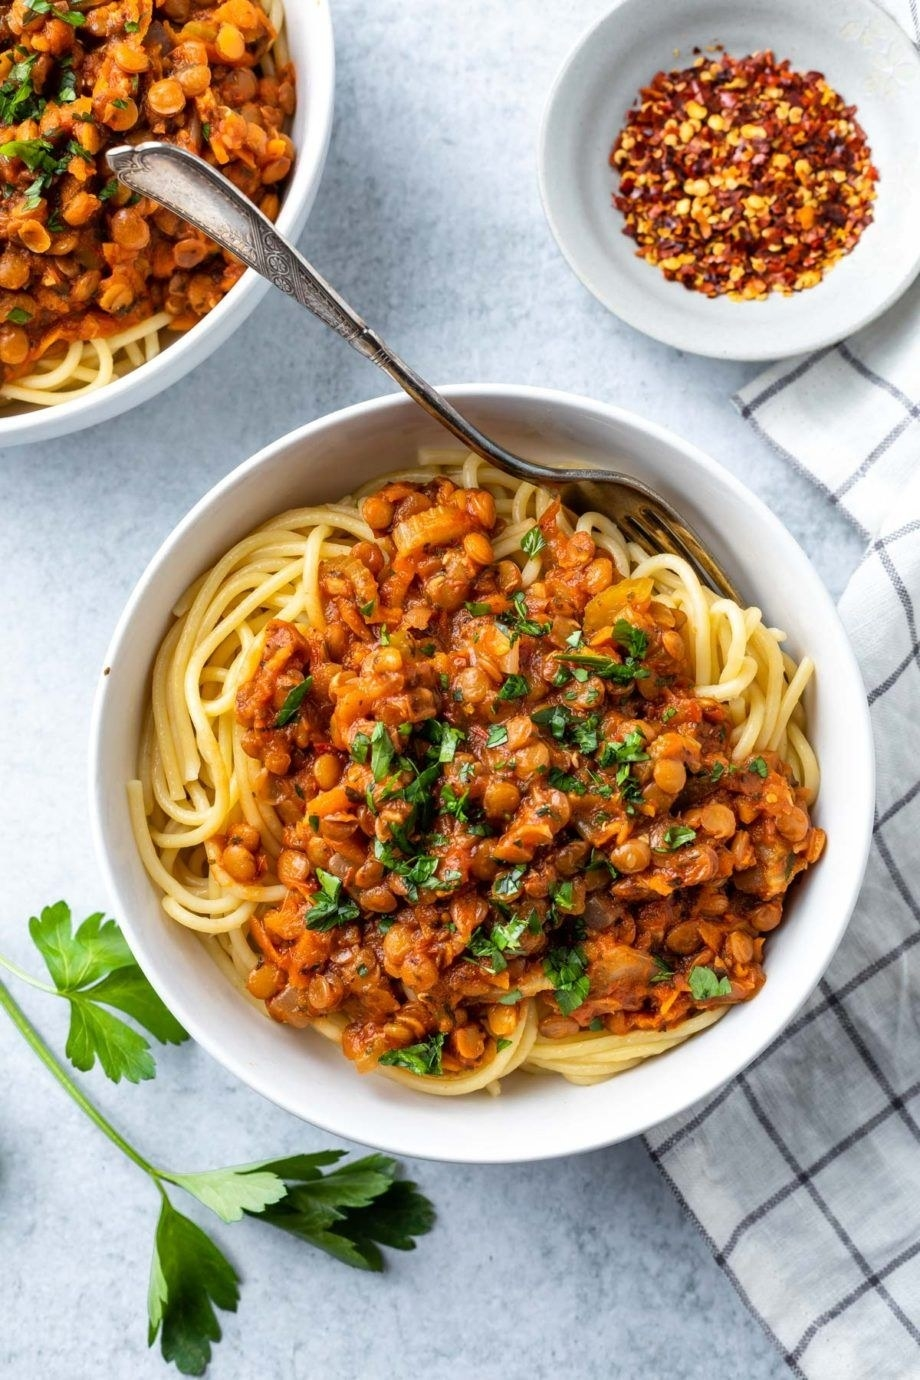 A bowl of spaghetti with lentil Bolognese and fresh parsley.